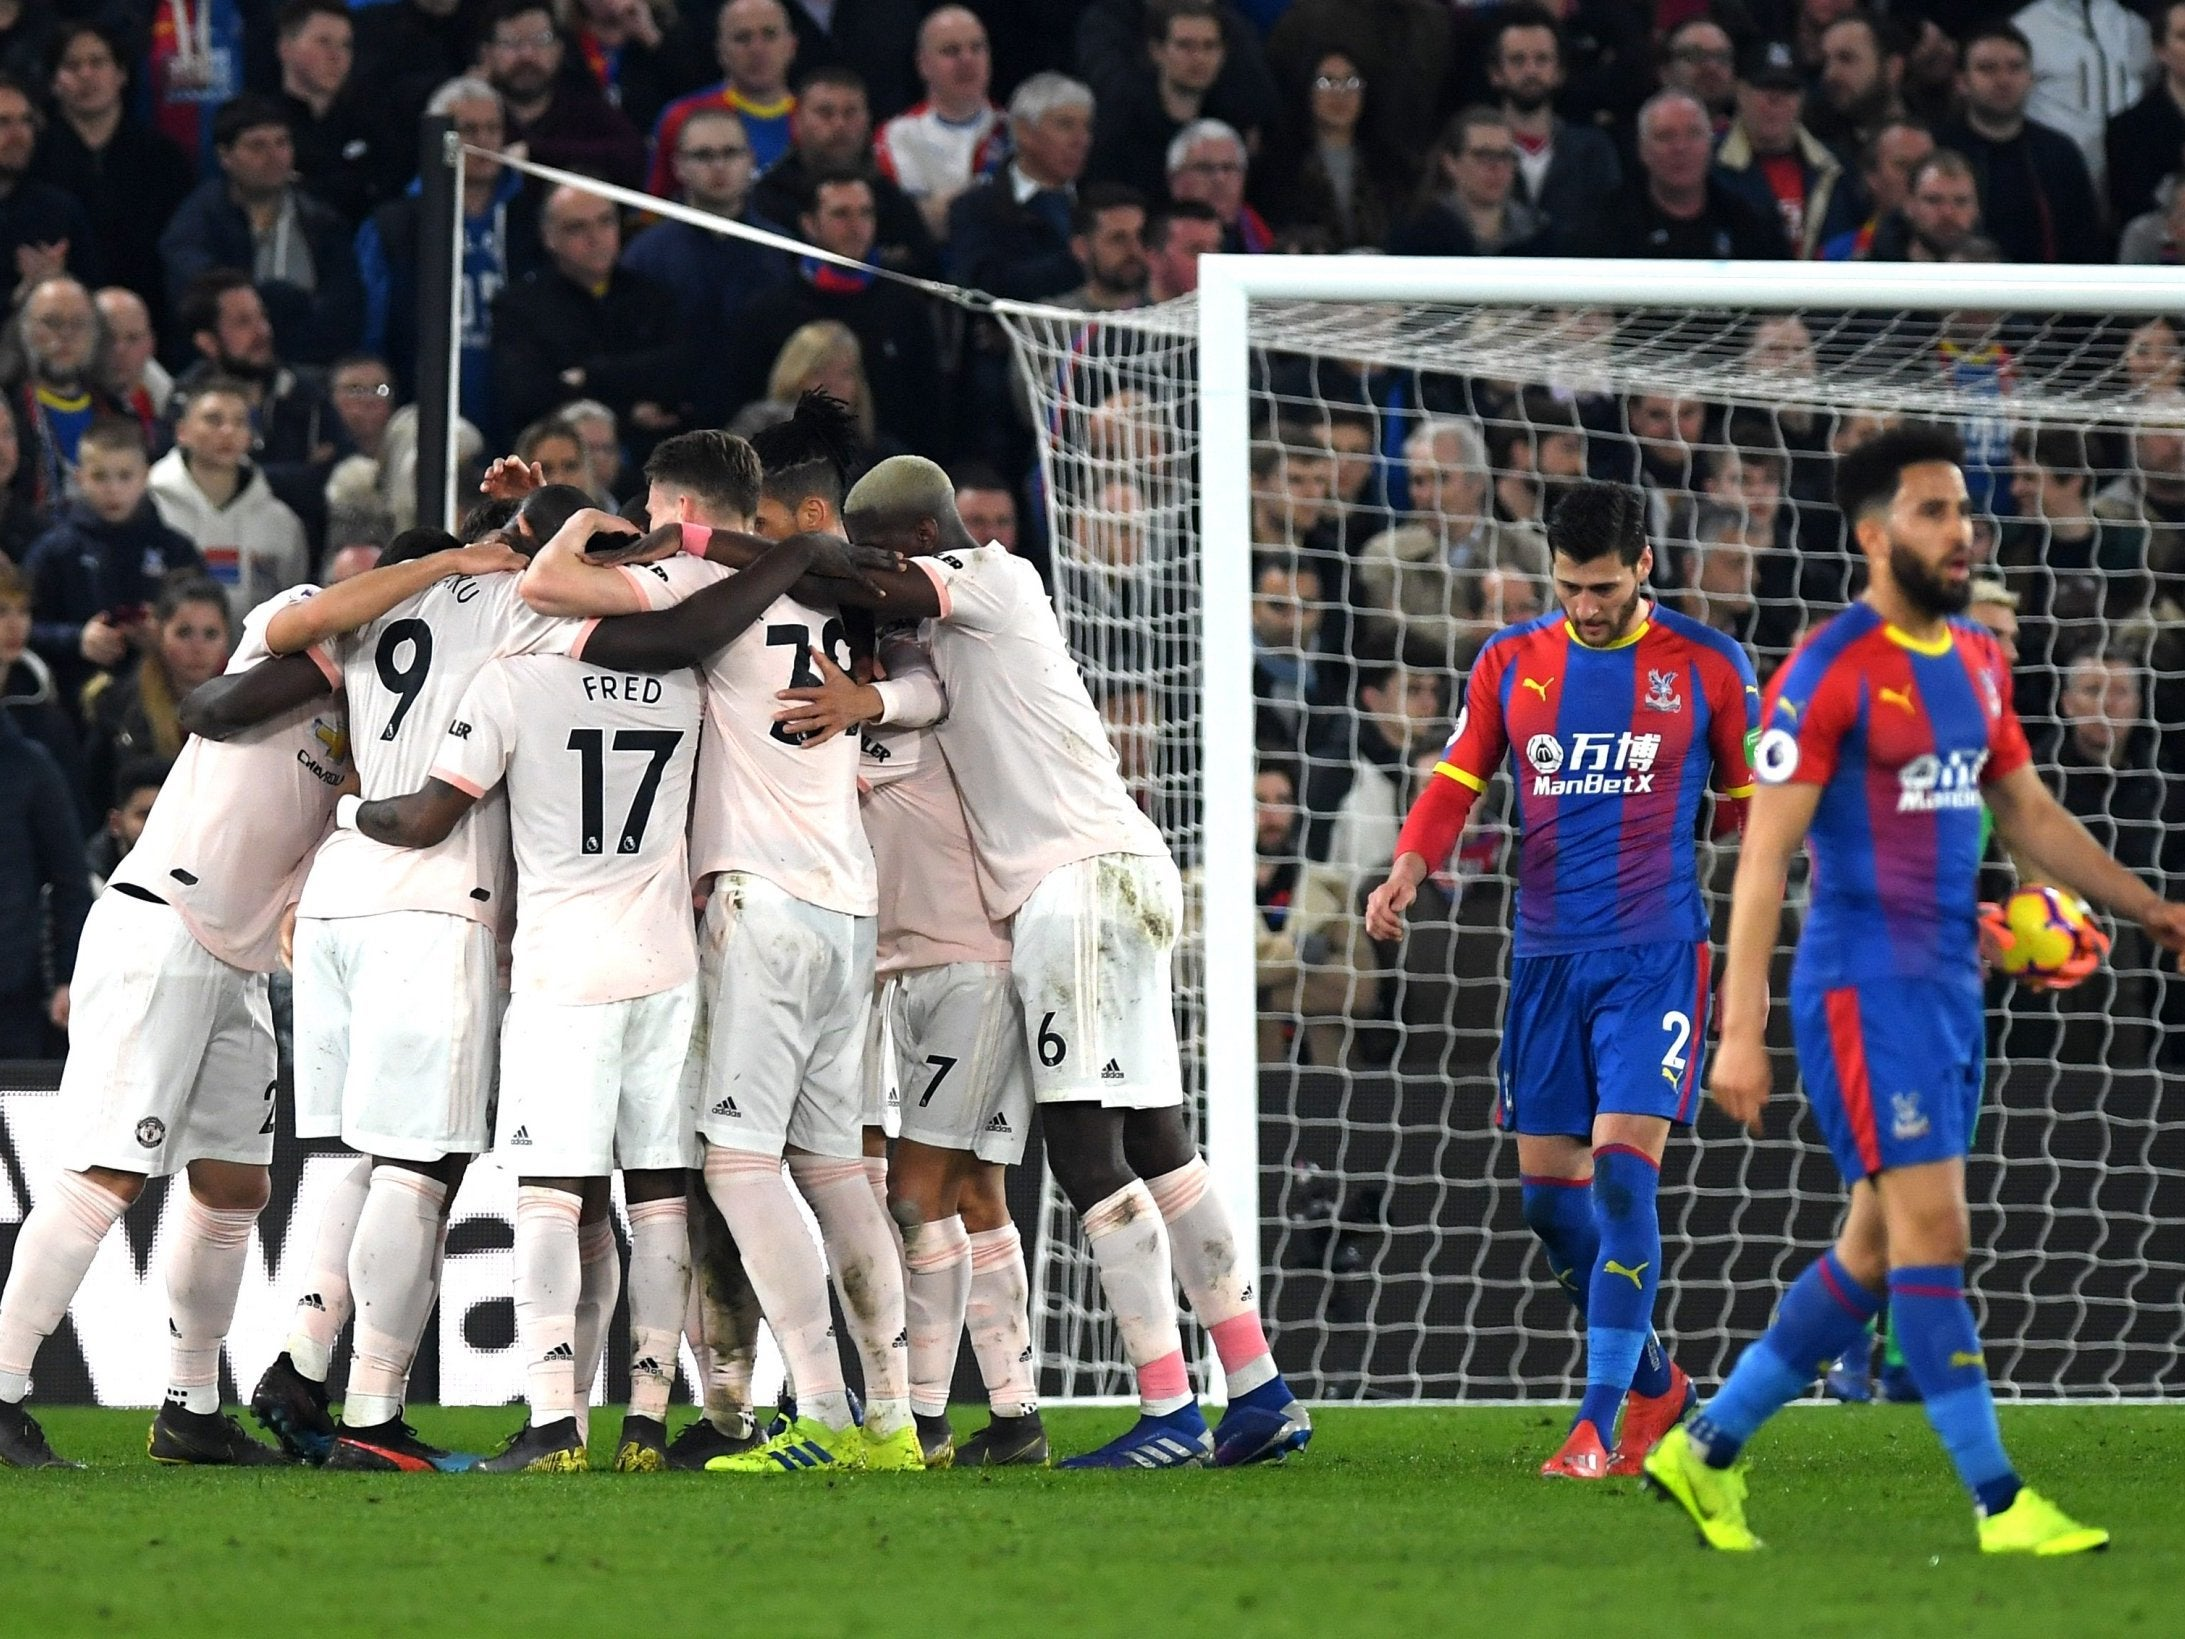 Crystal Palace Vs Manchester United, Player Ratings